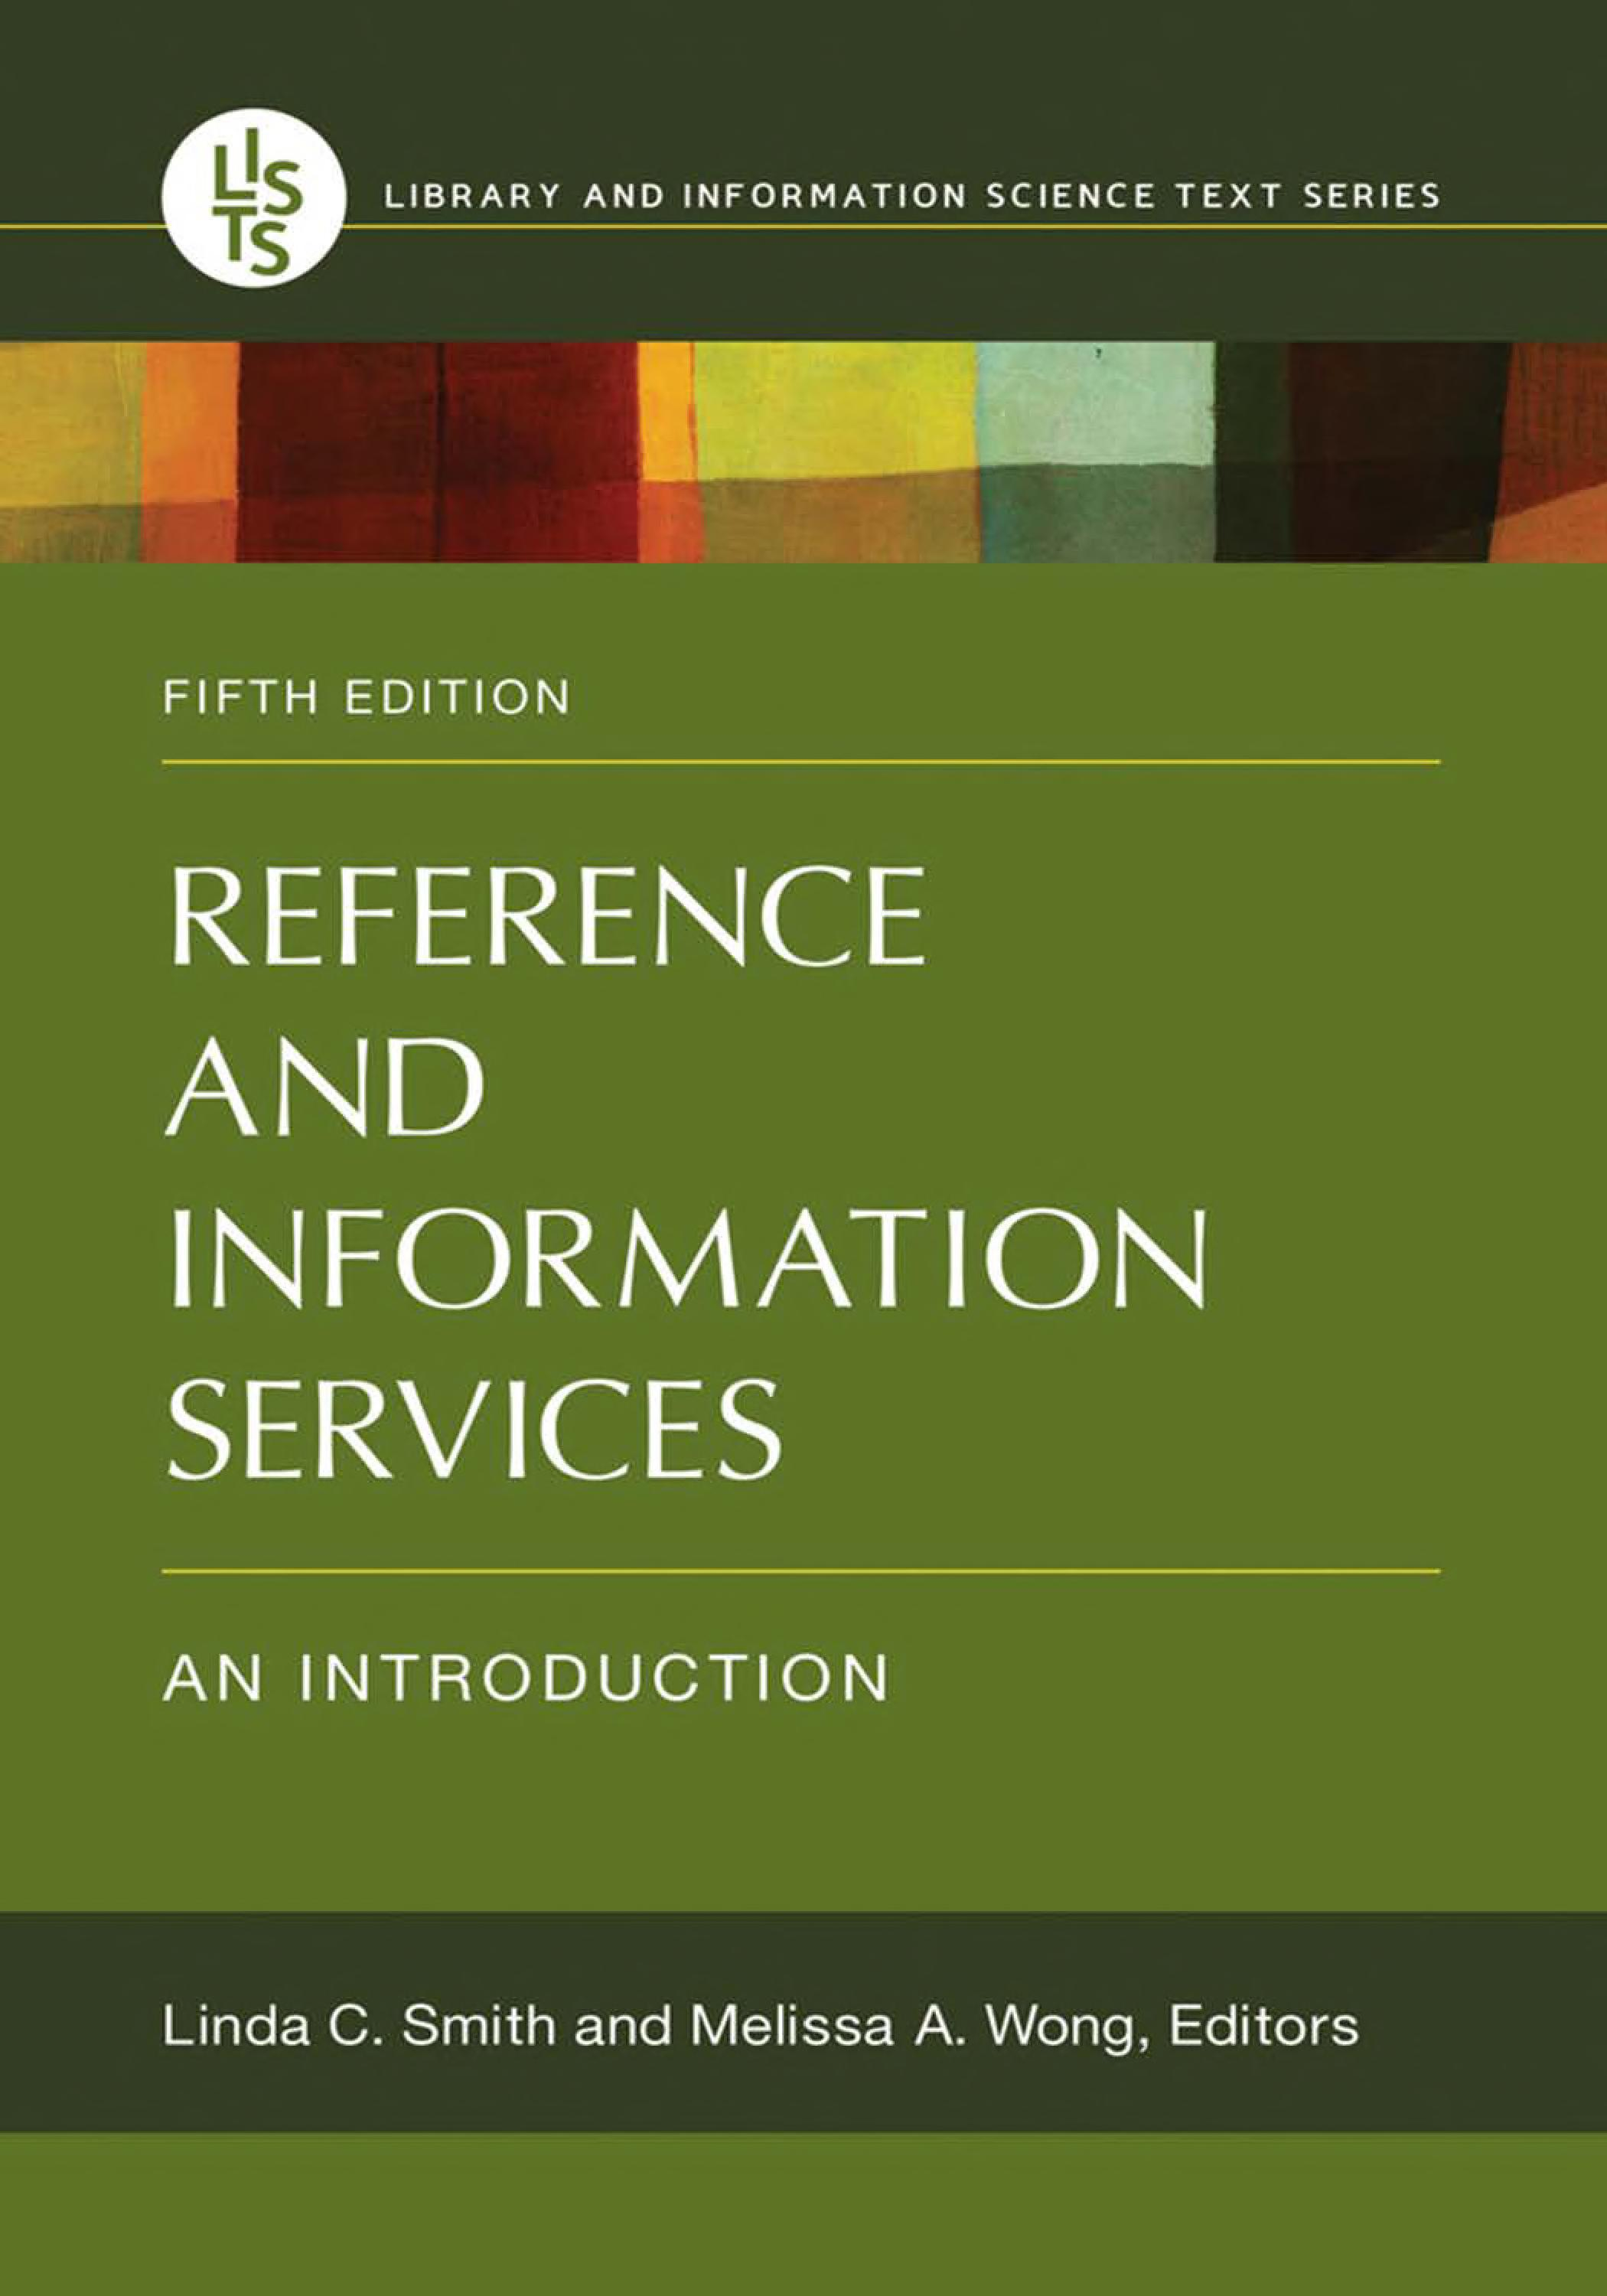 Reference and Information Services  An Introduction  5th Edition